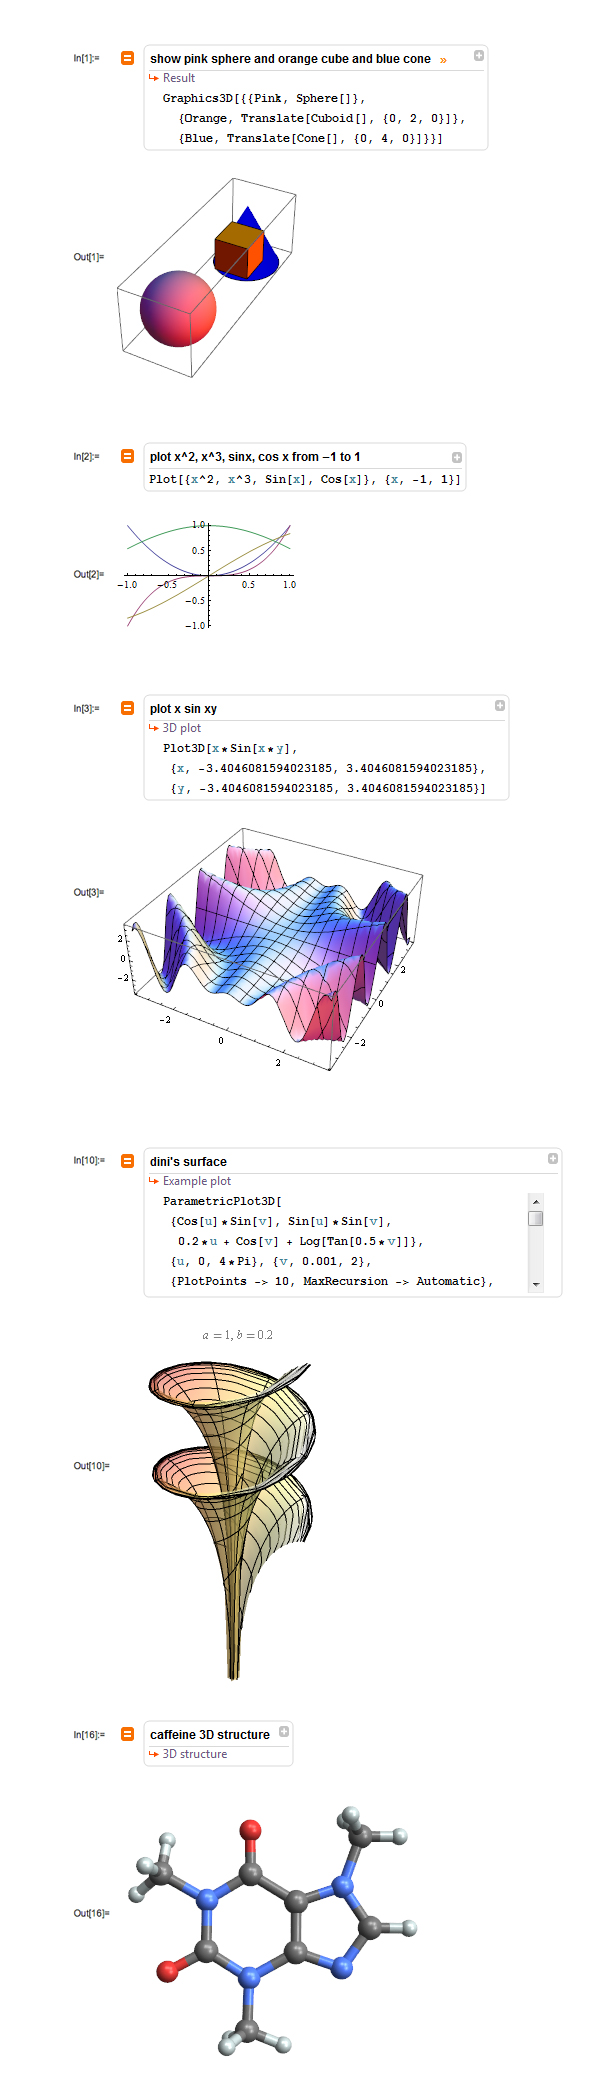 Free-form linguistic input in Mathematica